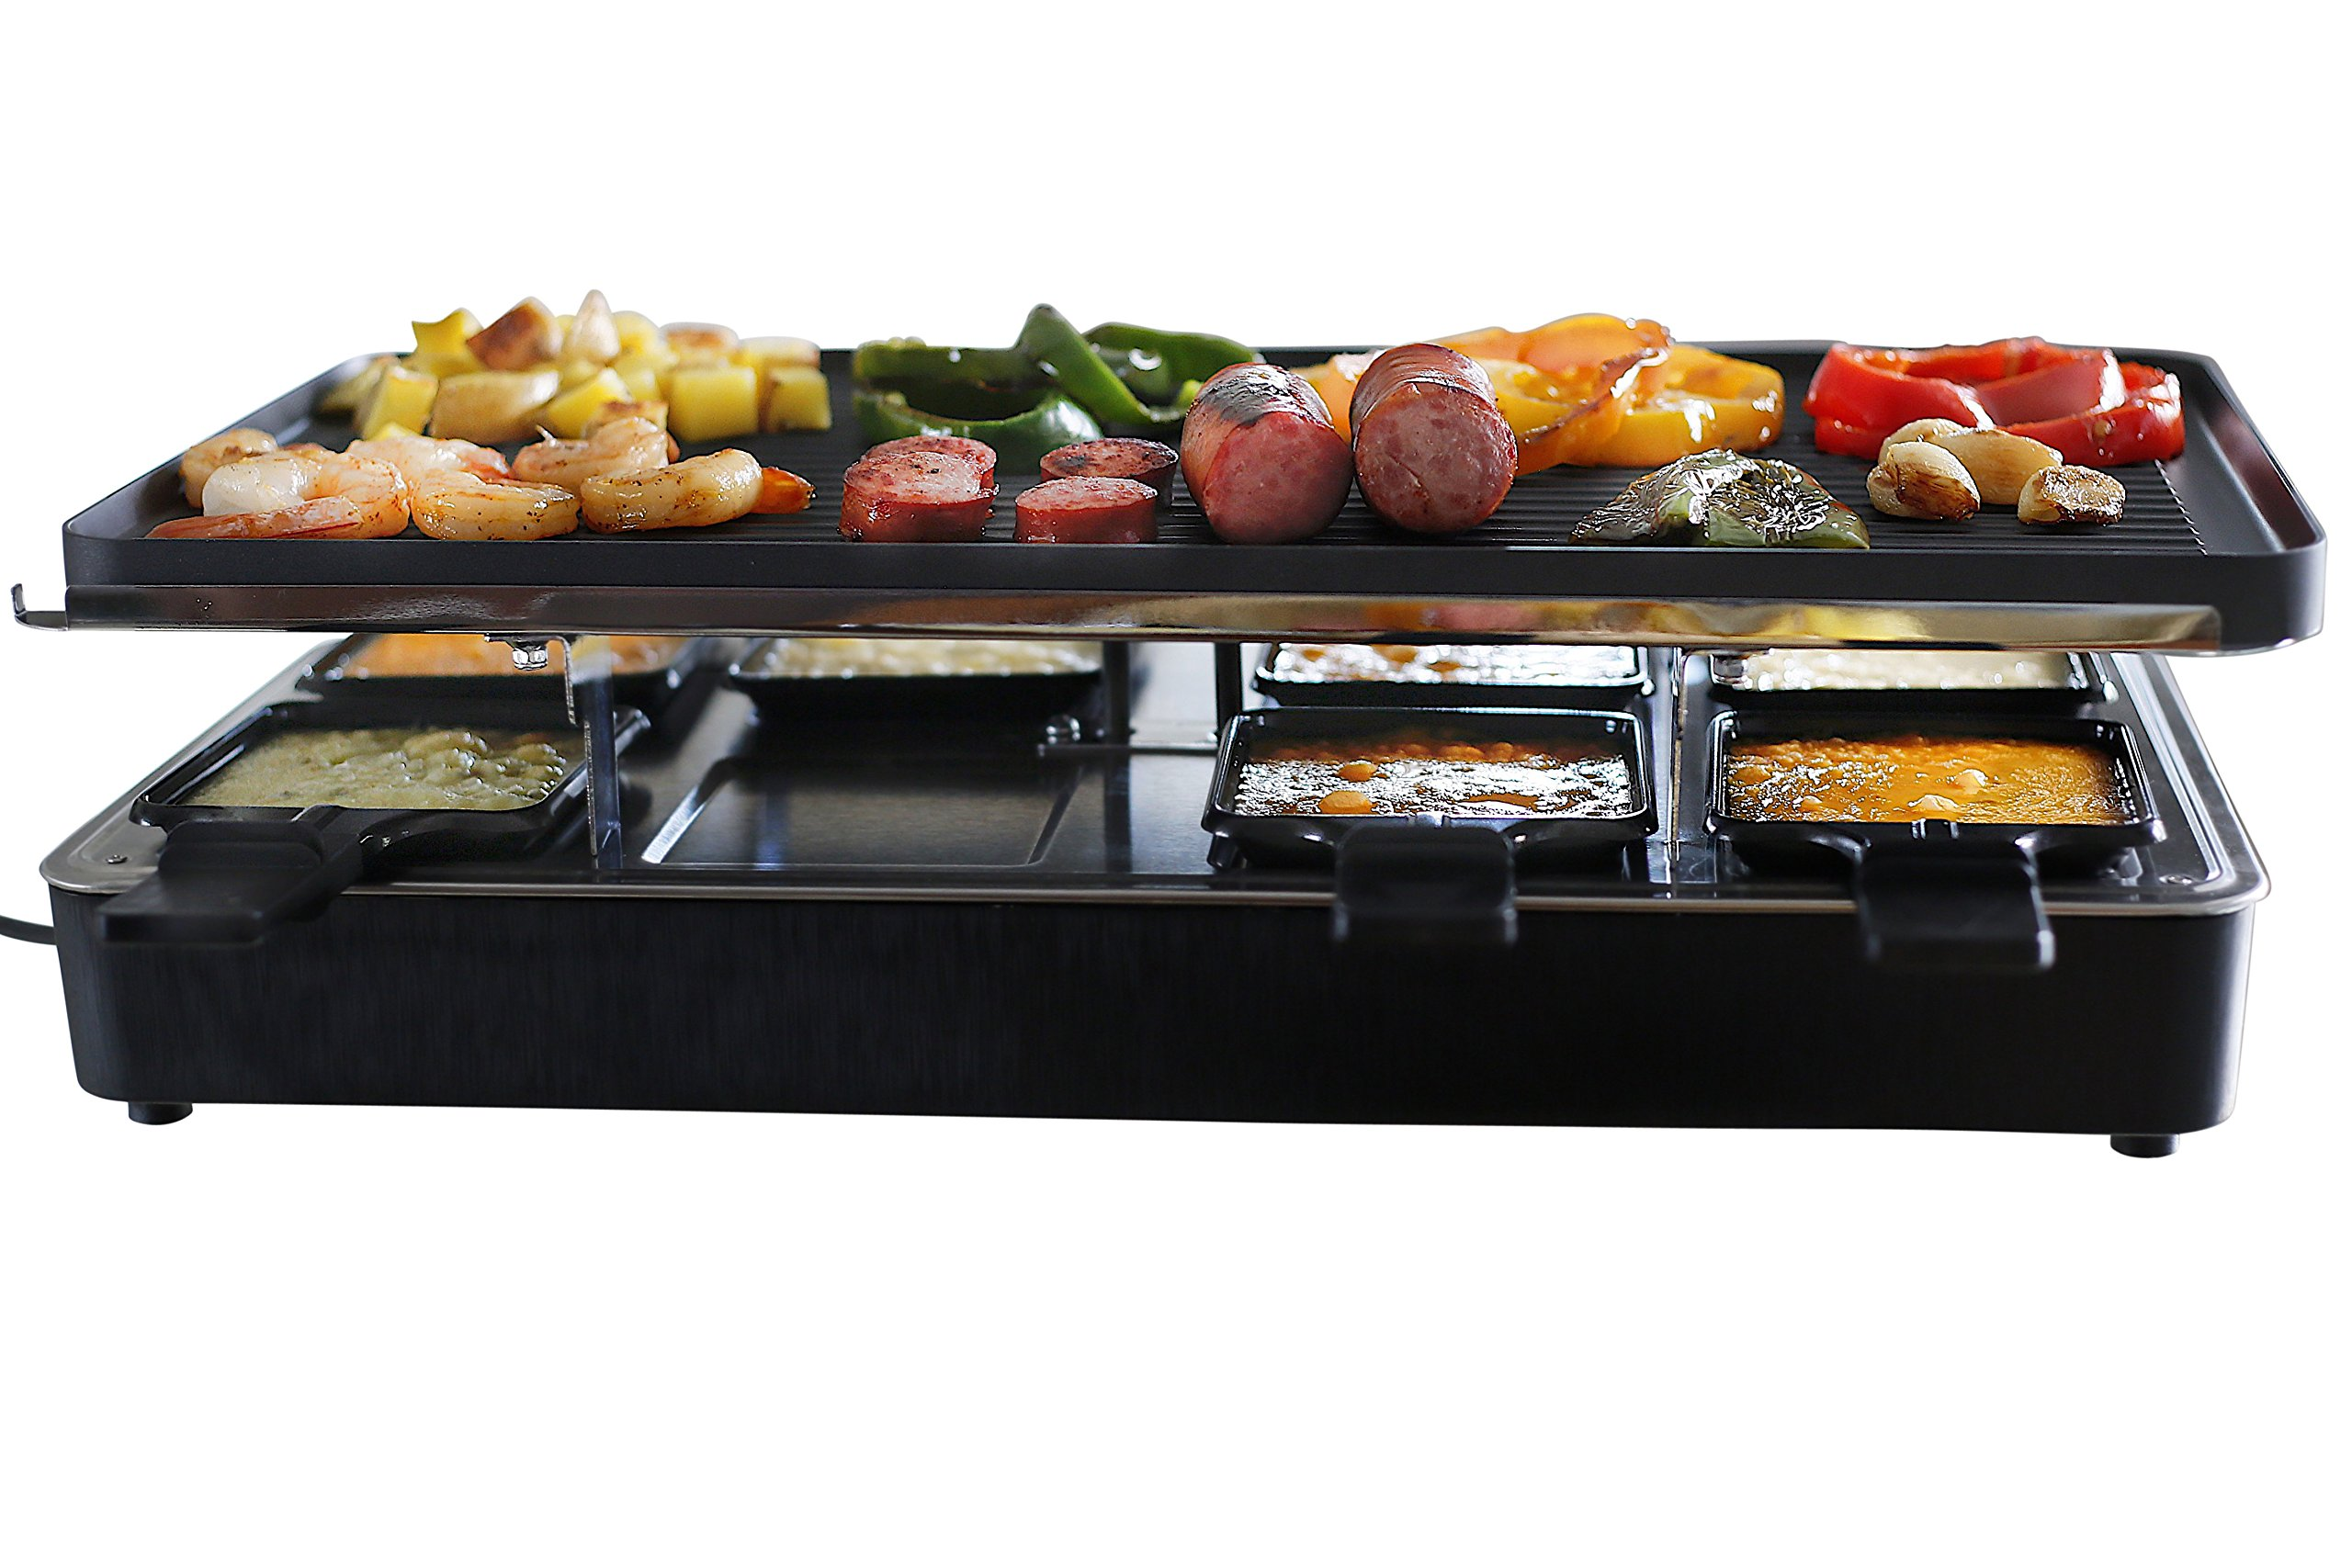 Milliard Raclette Grill for Eight People, Includes Granite Cooking Stone, Reversible Non-Stick Grilling Surface, and 8 Paddles - Great for a Family Get Together or Party by Milliard